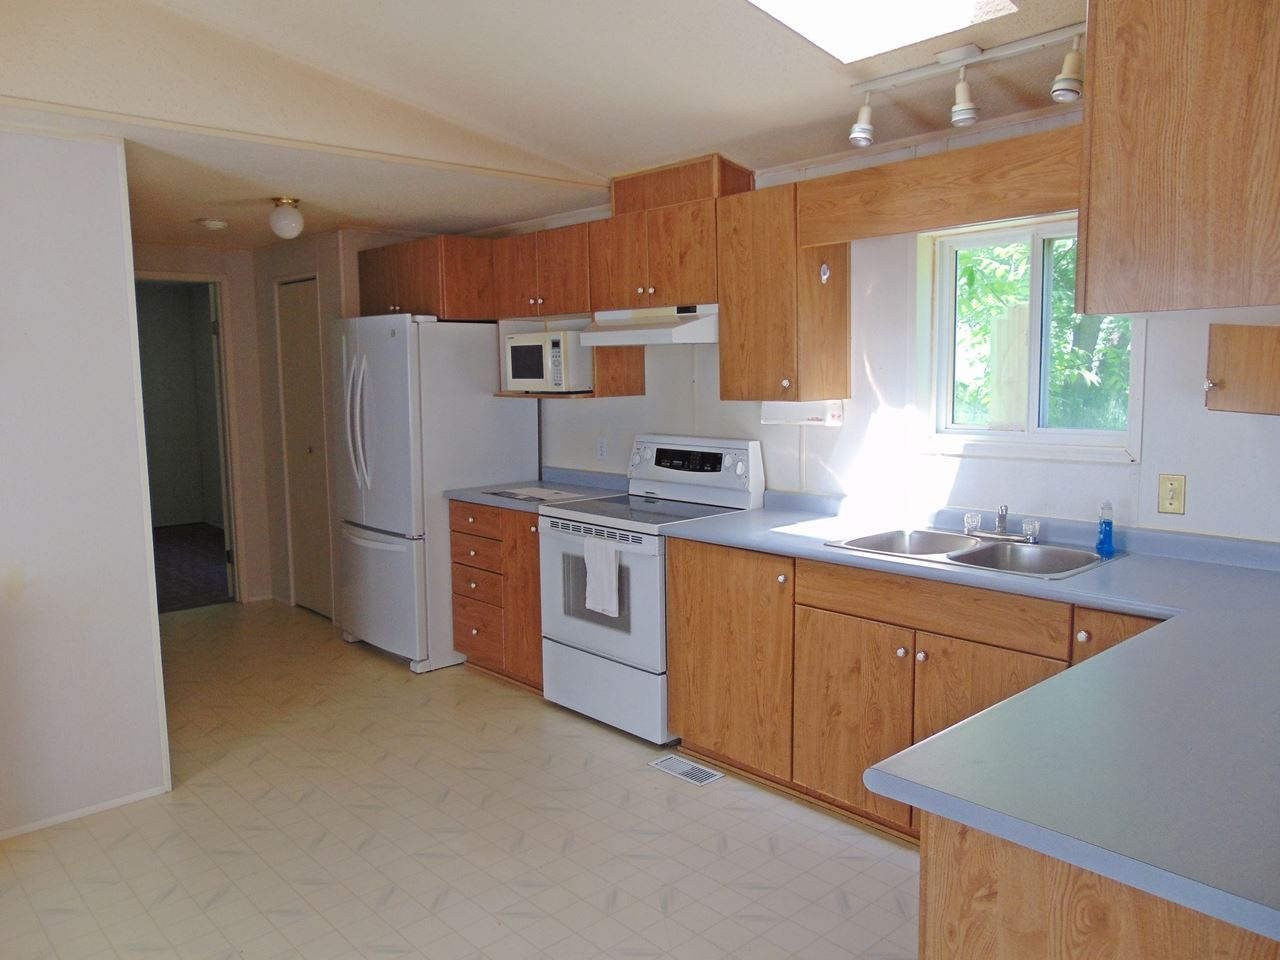 Photo 7: 56215 Rge Rd 234: Rural Sturgeon County Manufactured Home for sale : MLS(r) # E4063049